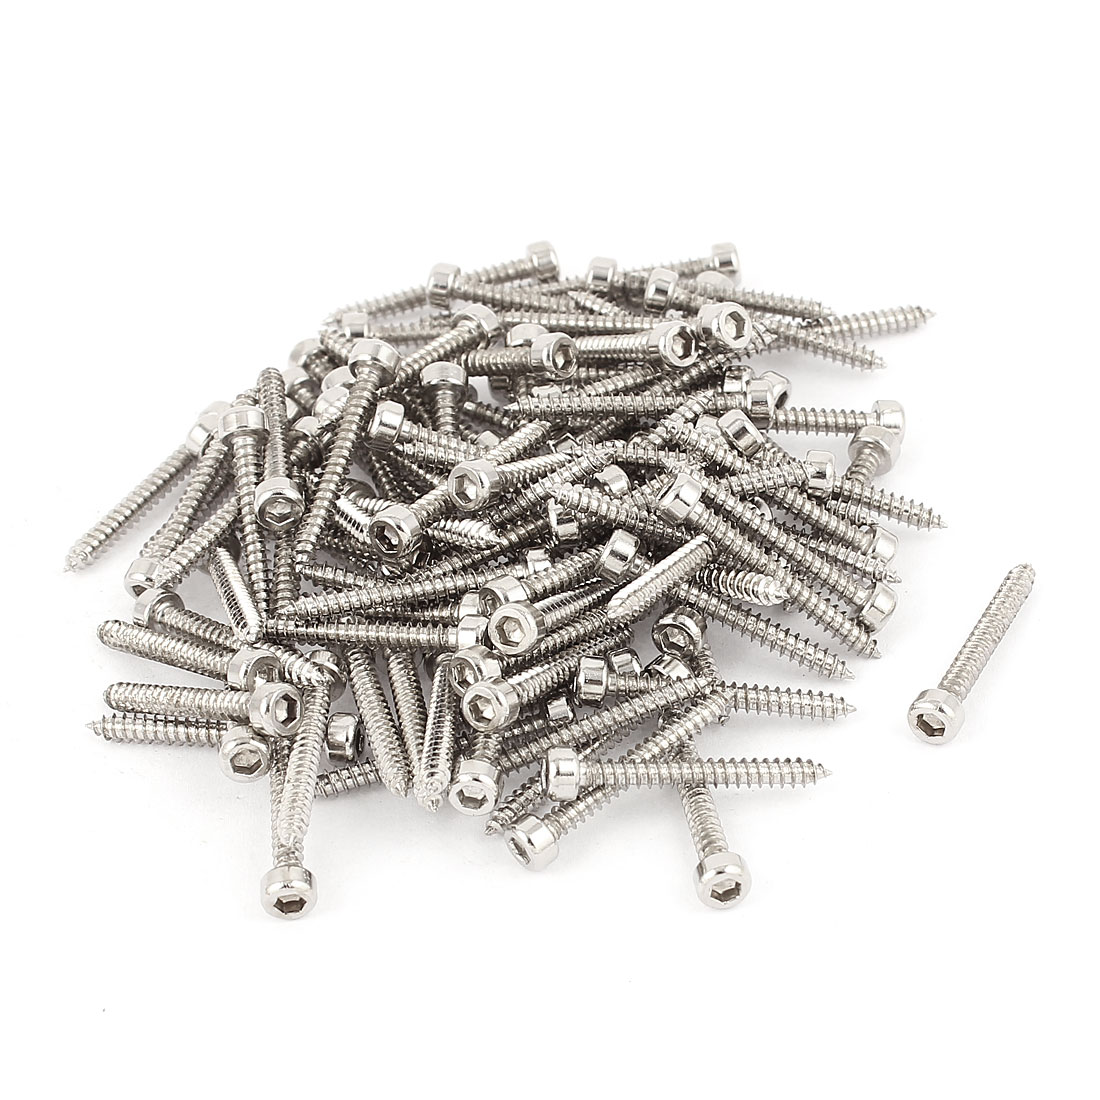 3mm x 25mm Threaded 1mm Pitch Hex Head Self Tapping Screws Silver Tone 100 Pcs